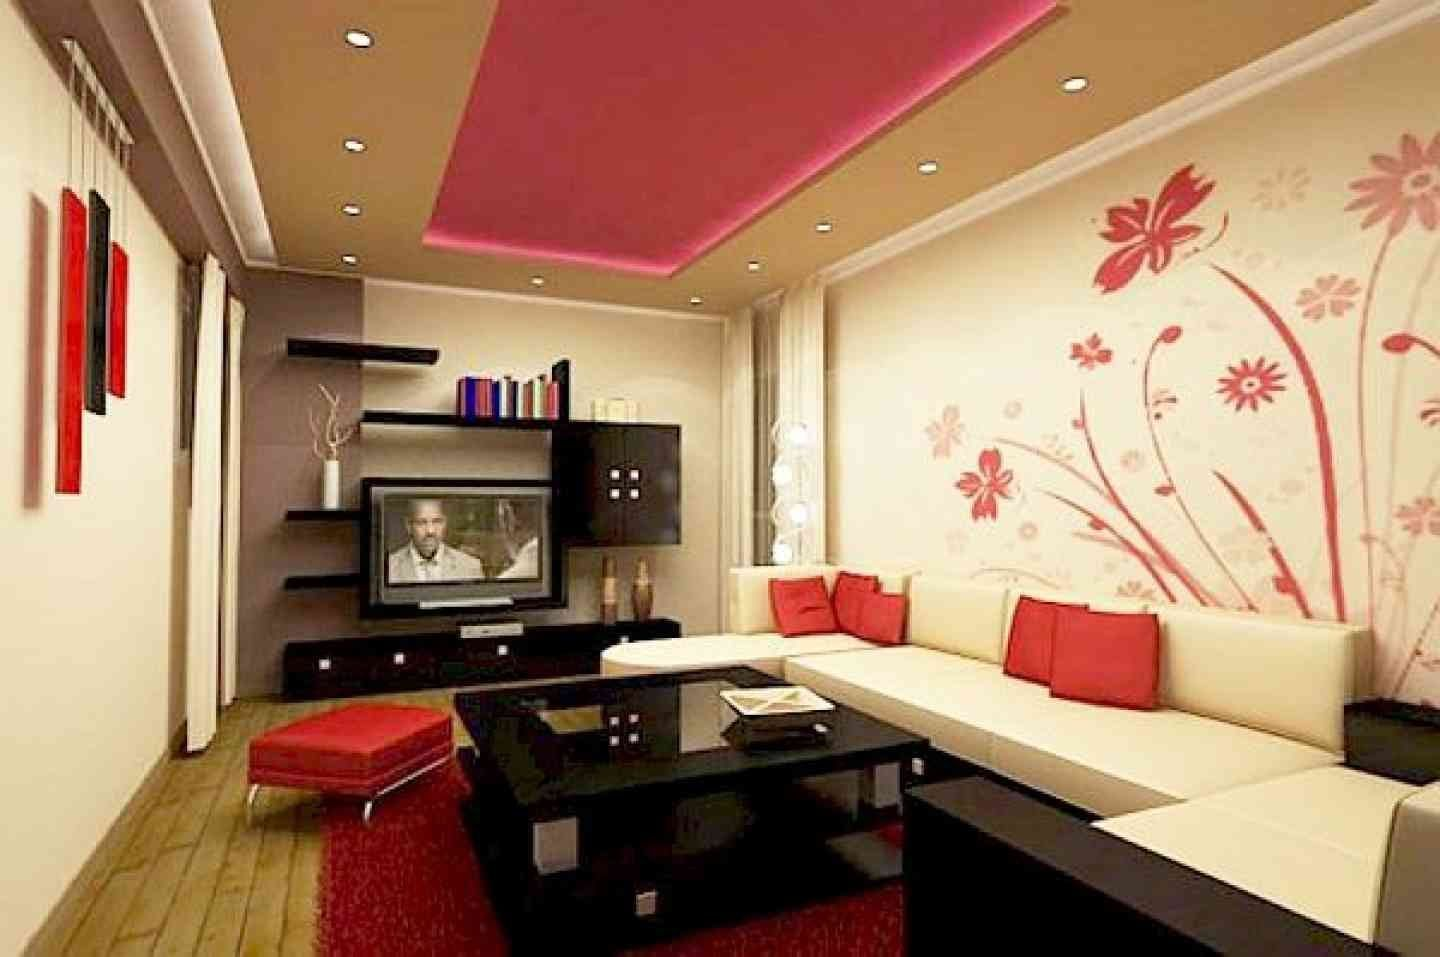 Top 27 Eye Catching Accent Walls Ideas Of Living Room Plan N Design Design Interiors Interiordes White Walls Living Room Luxury Living Room Living Room Red